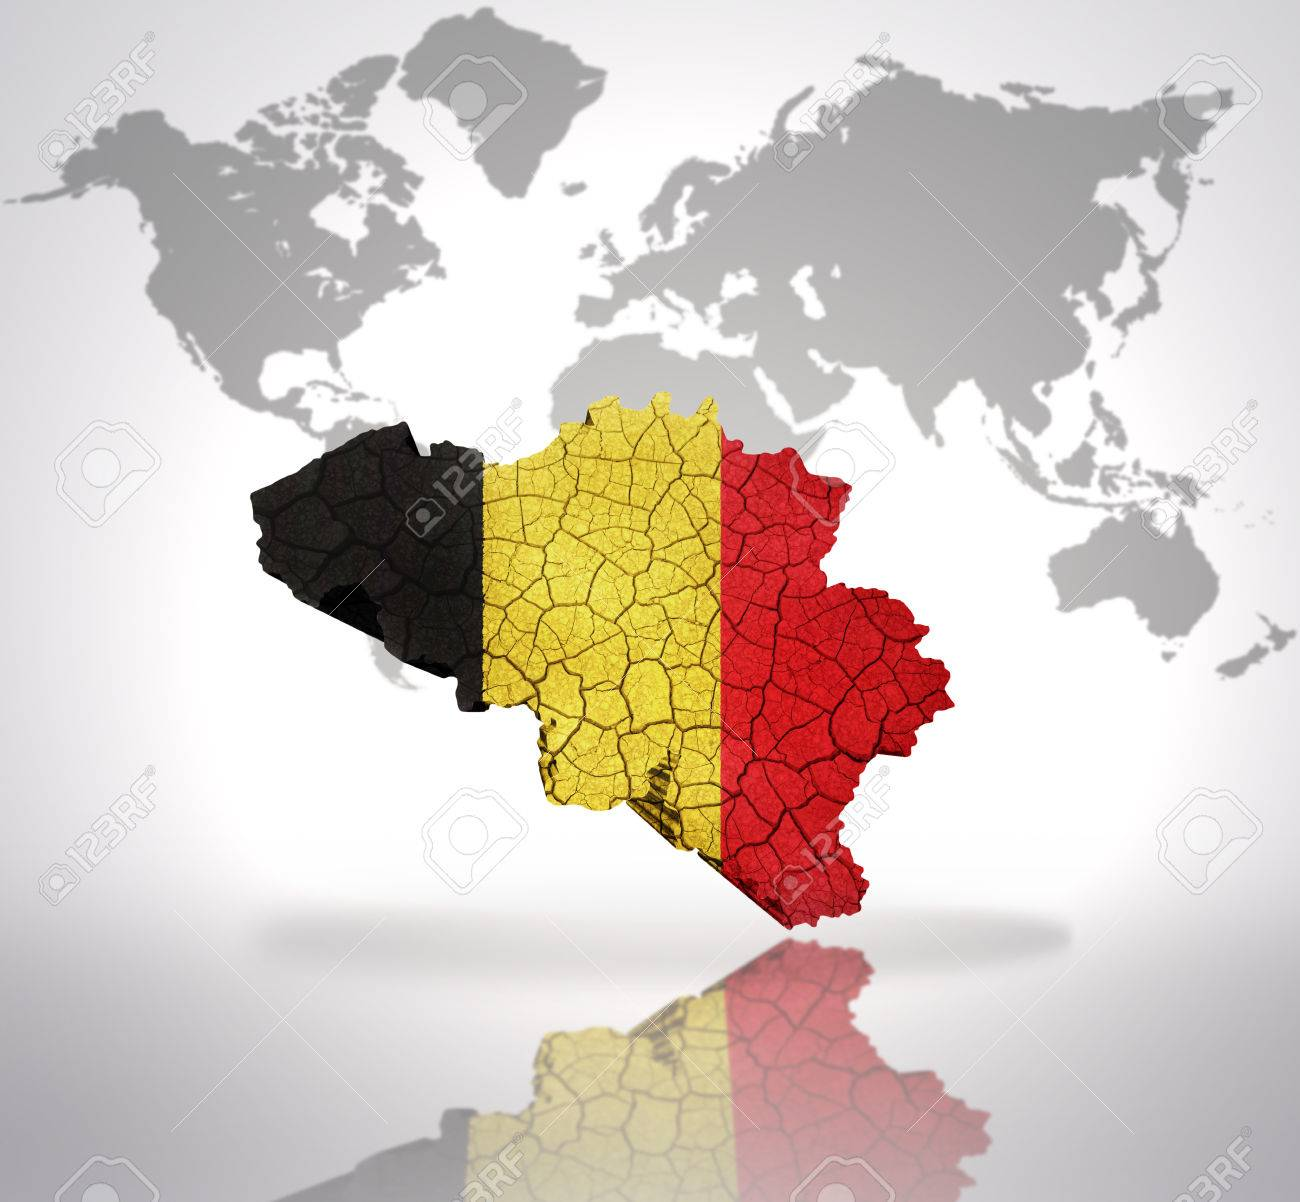 Map of belgium with belgian flag on a world map background stock map of belgium with belgian flag on a world map background stock photo 32714957 gumiabroncs Choice Image